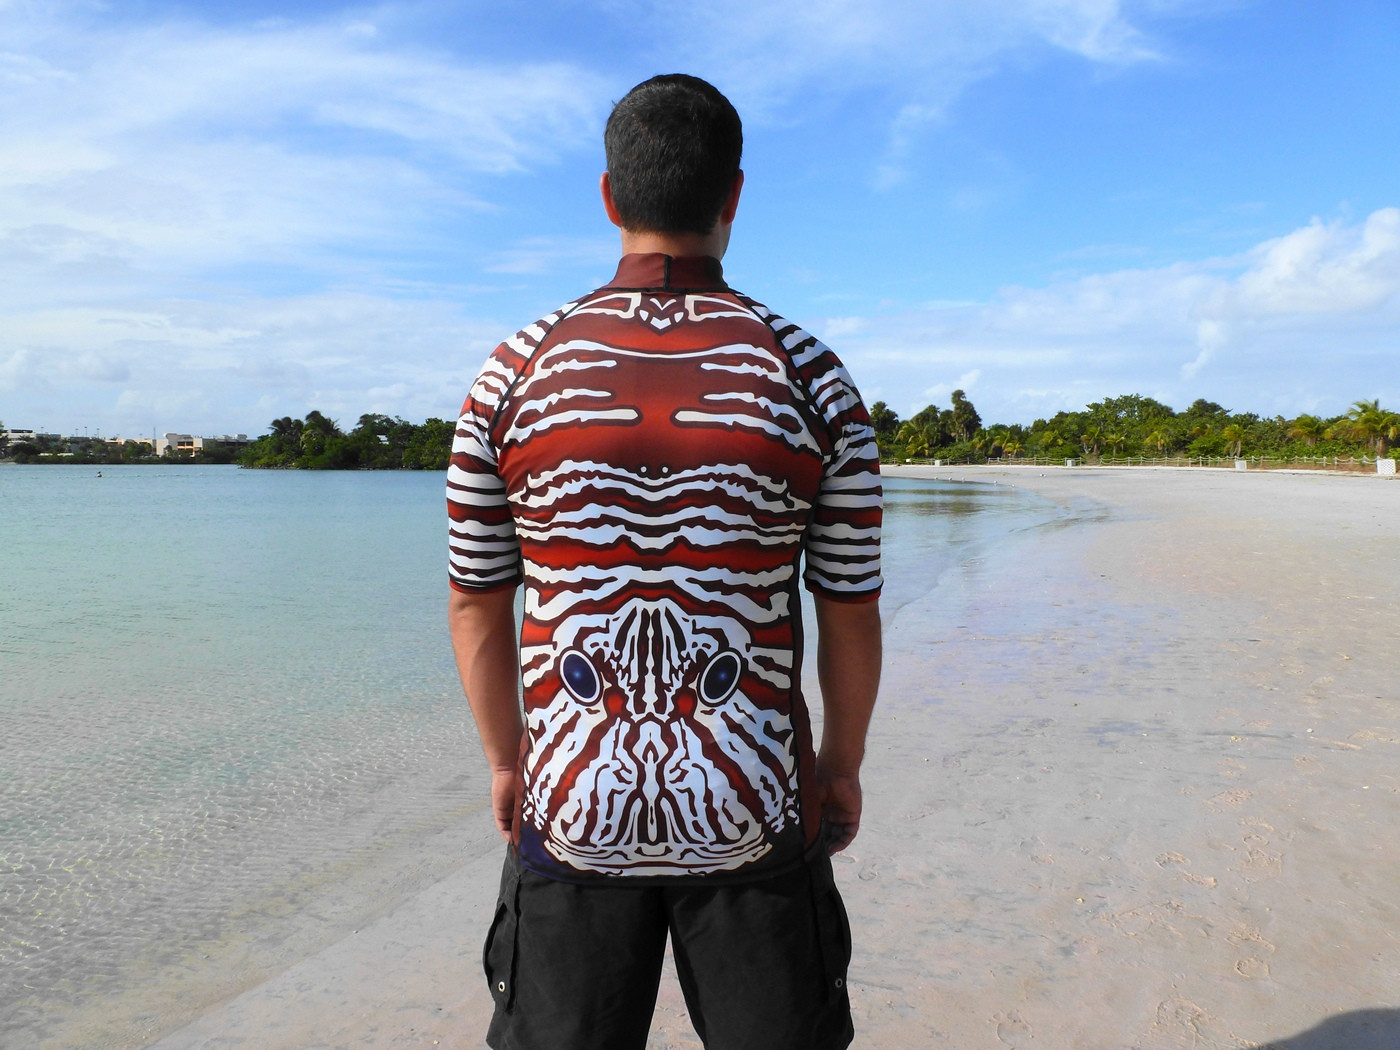 Shark Repellent Rash Guard For Beach And Water Sports